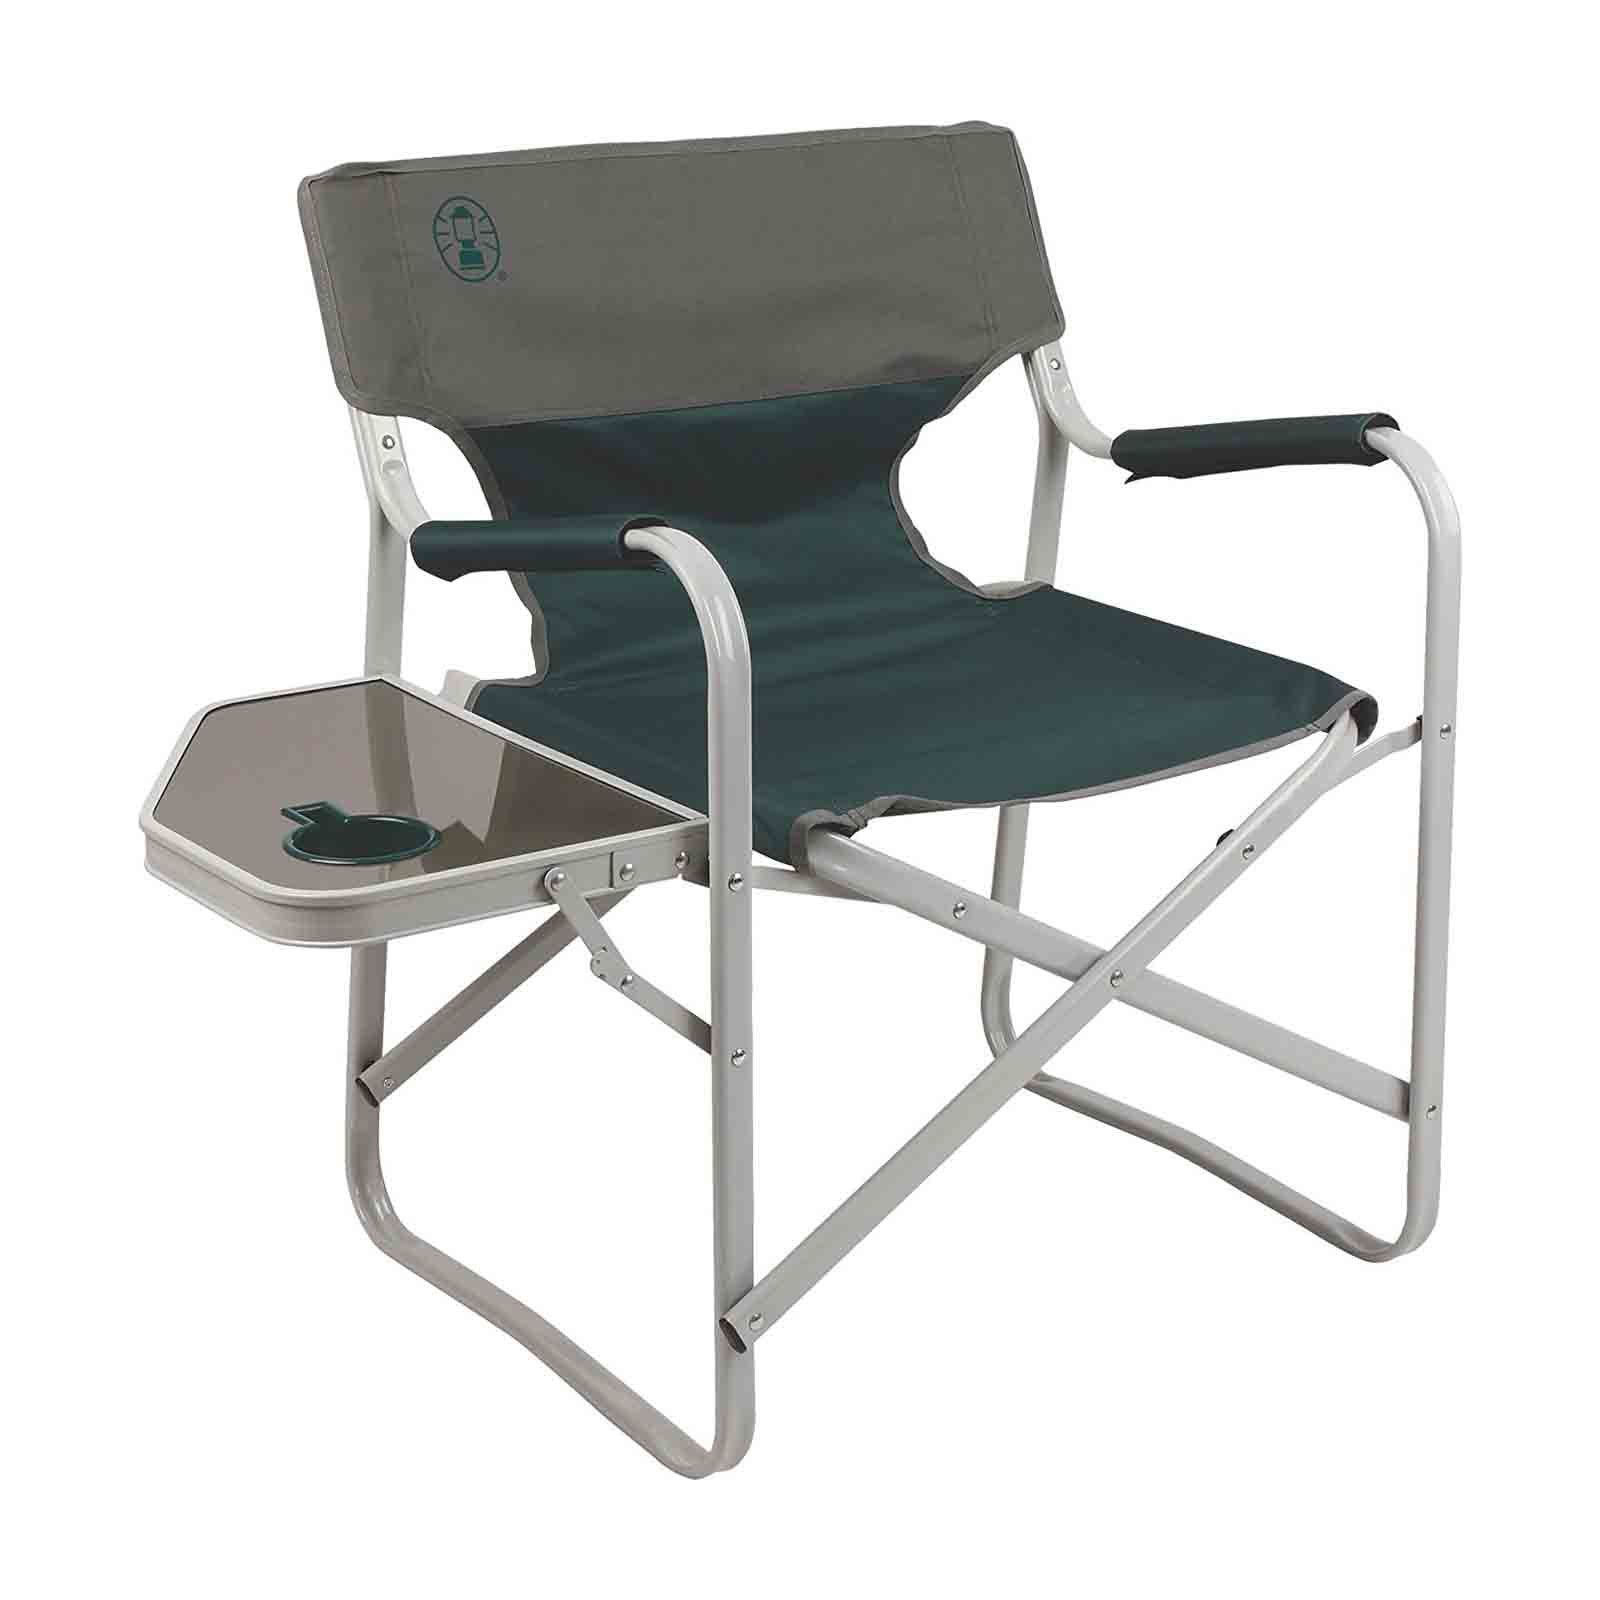 Admirable Outdoor Coleman Outpost Elite Deck Chair Products In 2019 Machost Co Dining Chair Design Ideas Machostcouk